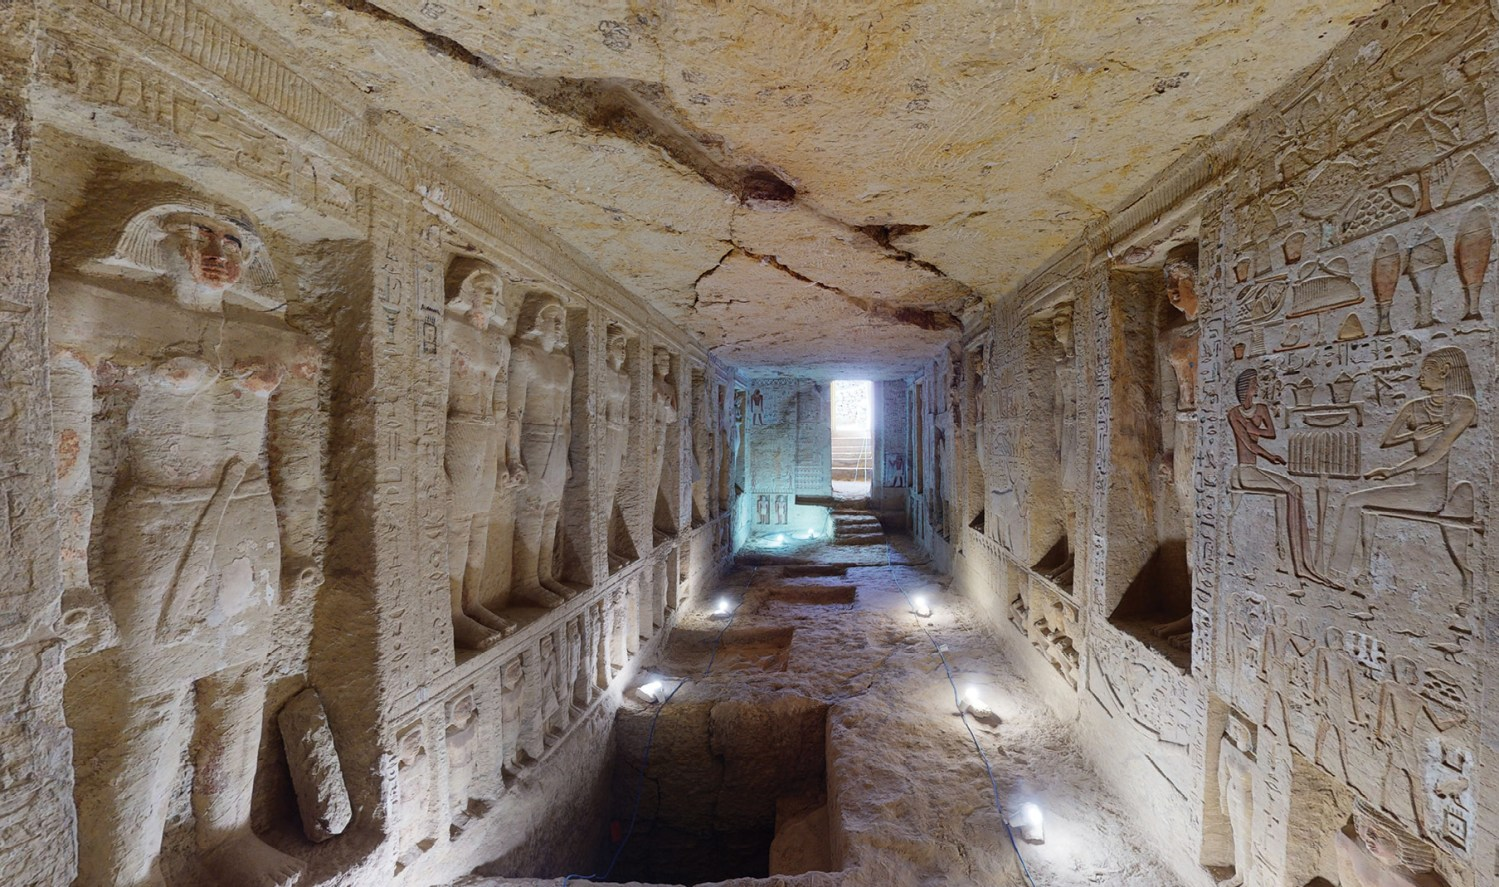 The lavishly decorated tomb of Wahtye, a high-ranking official in the 5th dynasty, is one of the Egyptian heritage sites for which 3D models have been created to allow 'visits' during the COVID-19 pandemic.